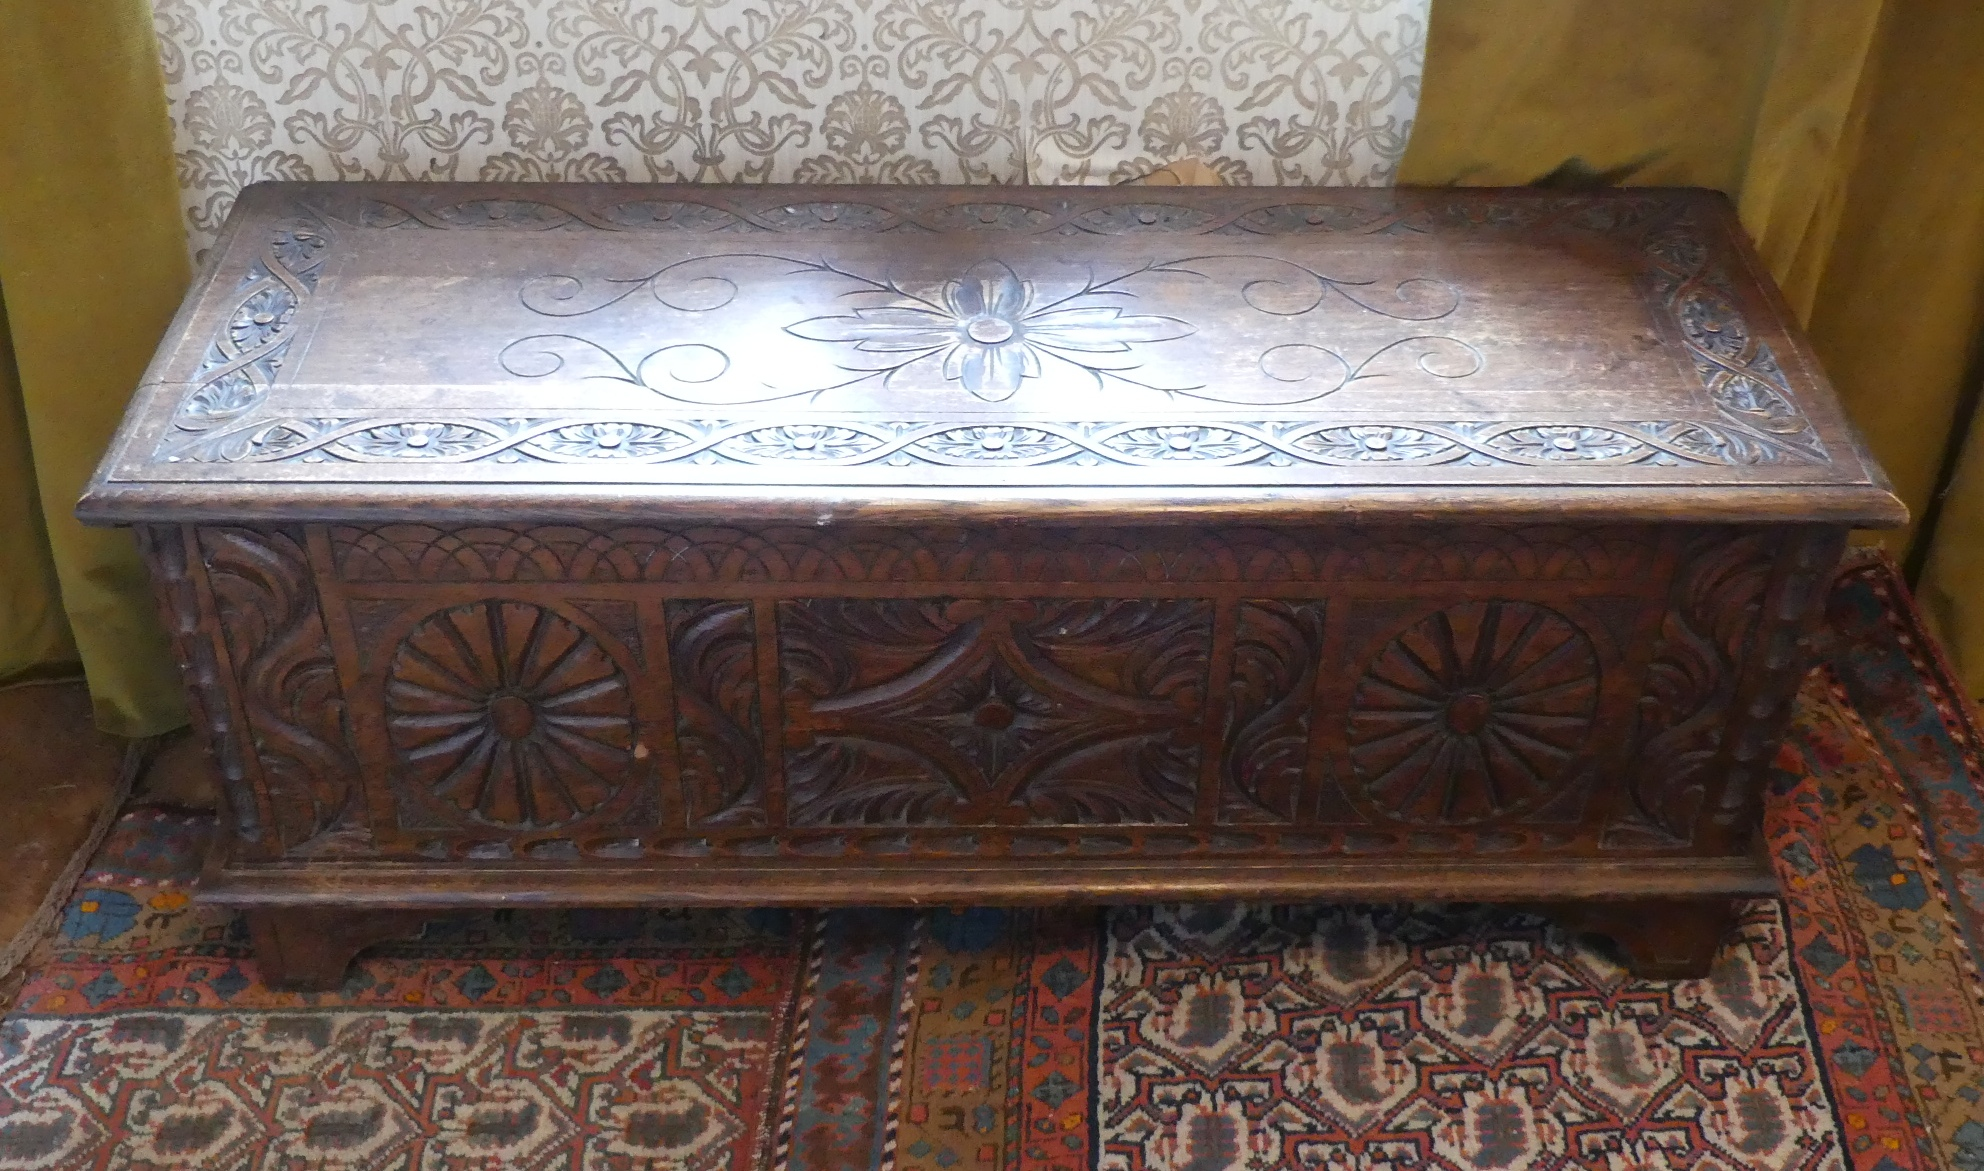 An antique carved oak Coffer, 47in (119.5cm) wide x 17½in (44.5cm) deep x 19½in (49.5cm) high. - Image 2 of 4